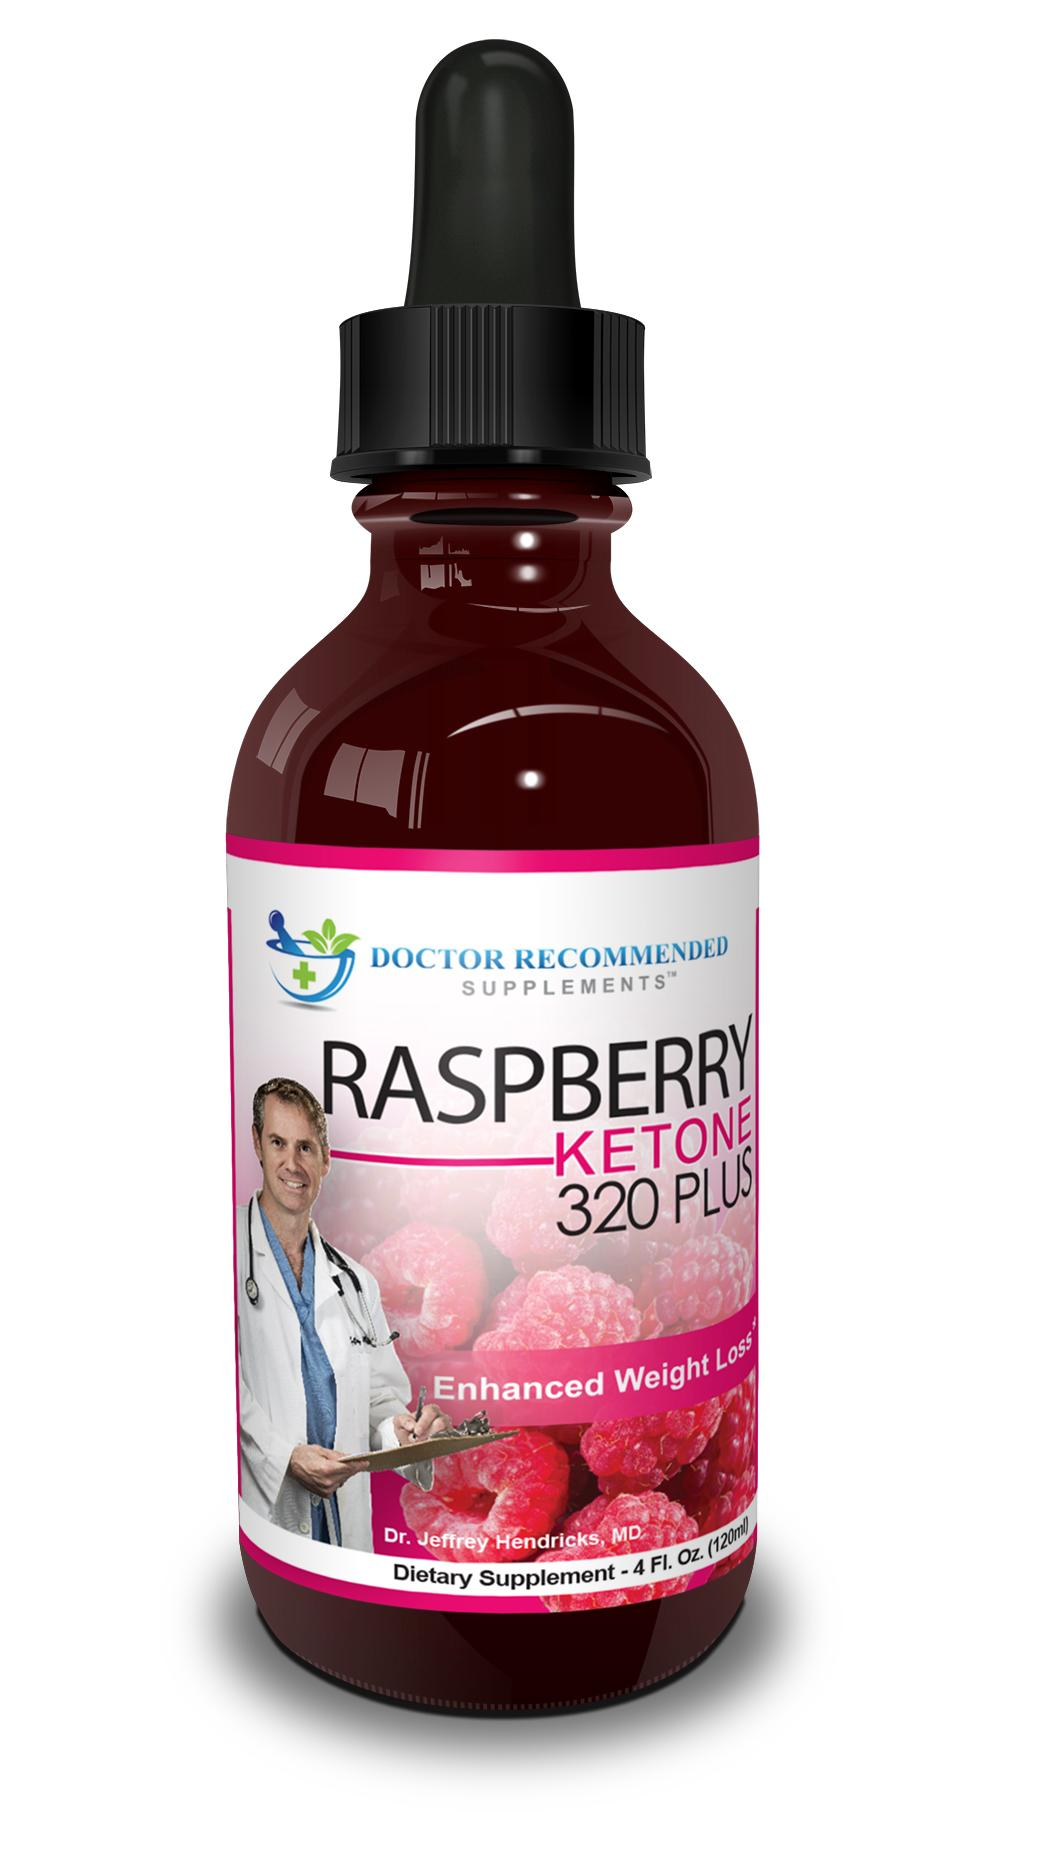 Amazon.com: Doctor Recommended Raspberry Ketone Supplement